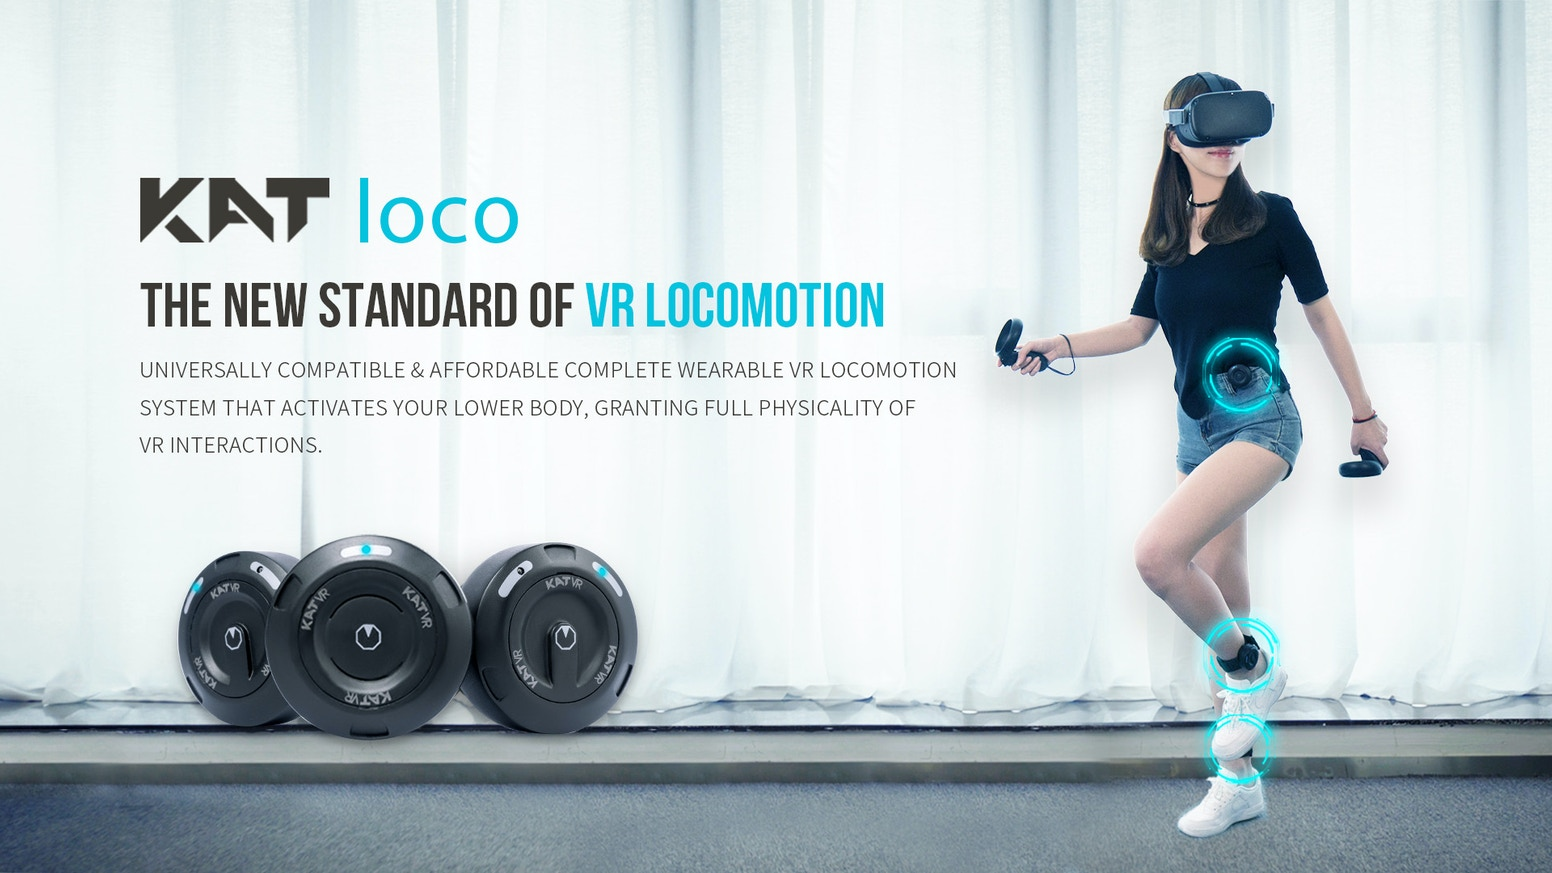 KAT loco: Complete Wearable Locomotion System - Walk into VR